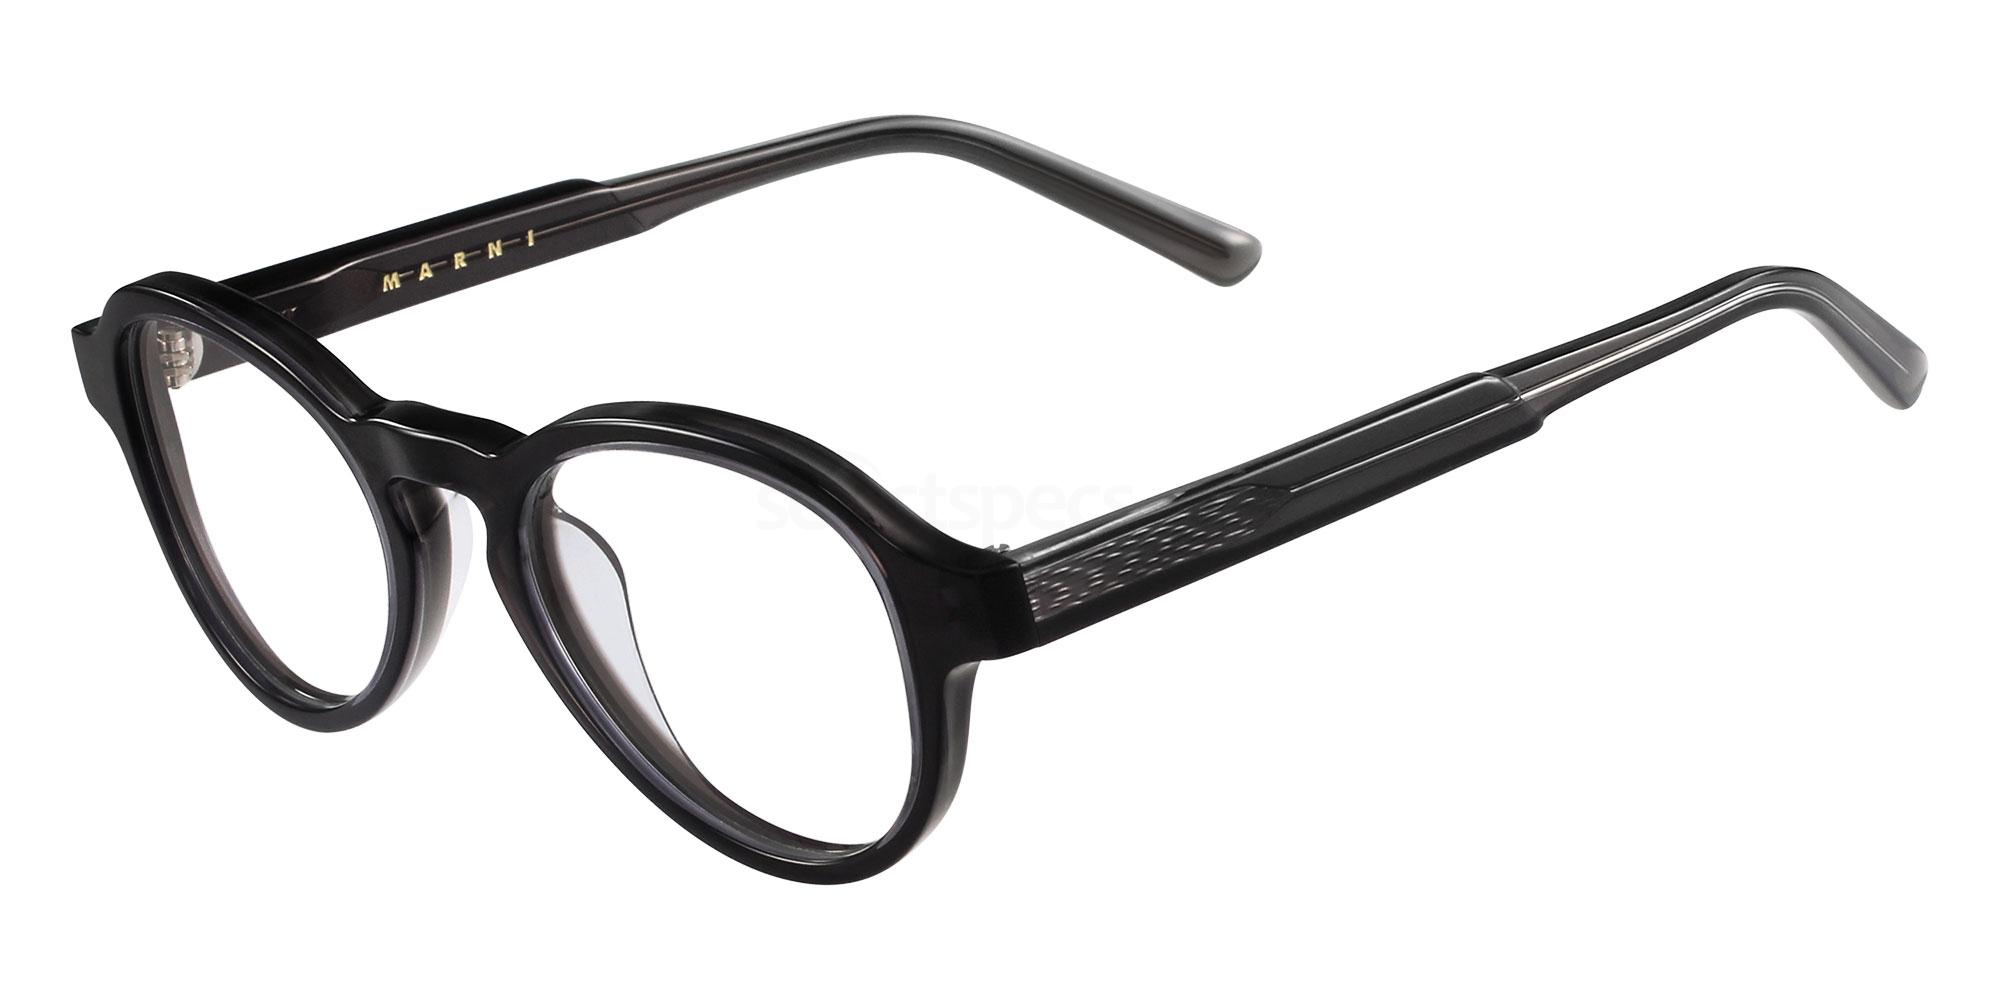 003 ME2602 Glasses, Marni